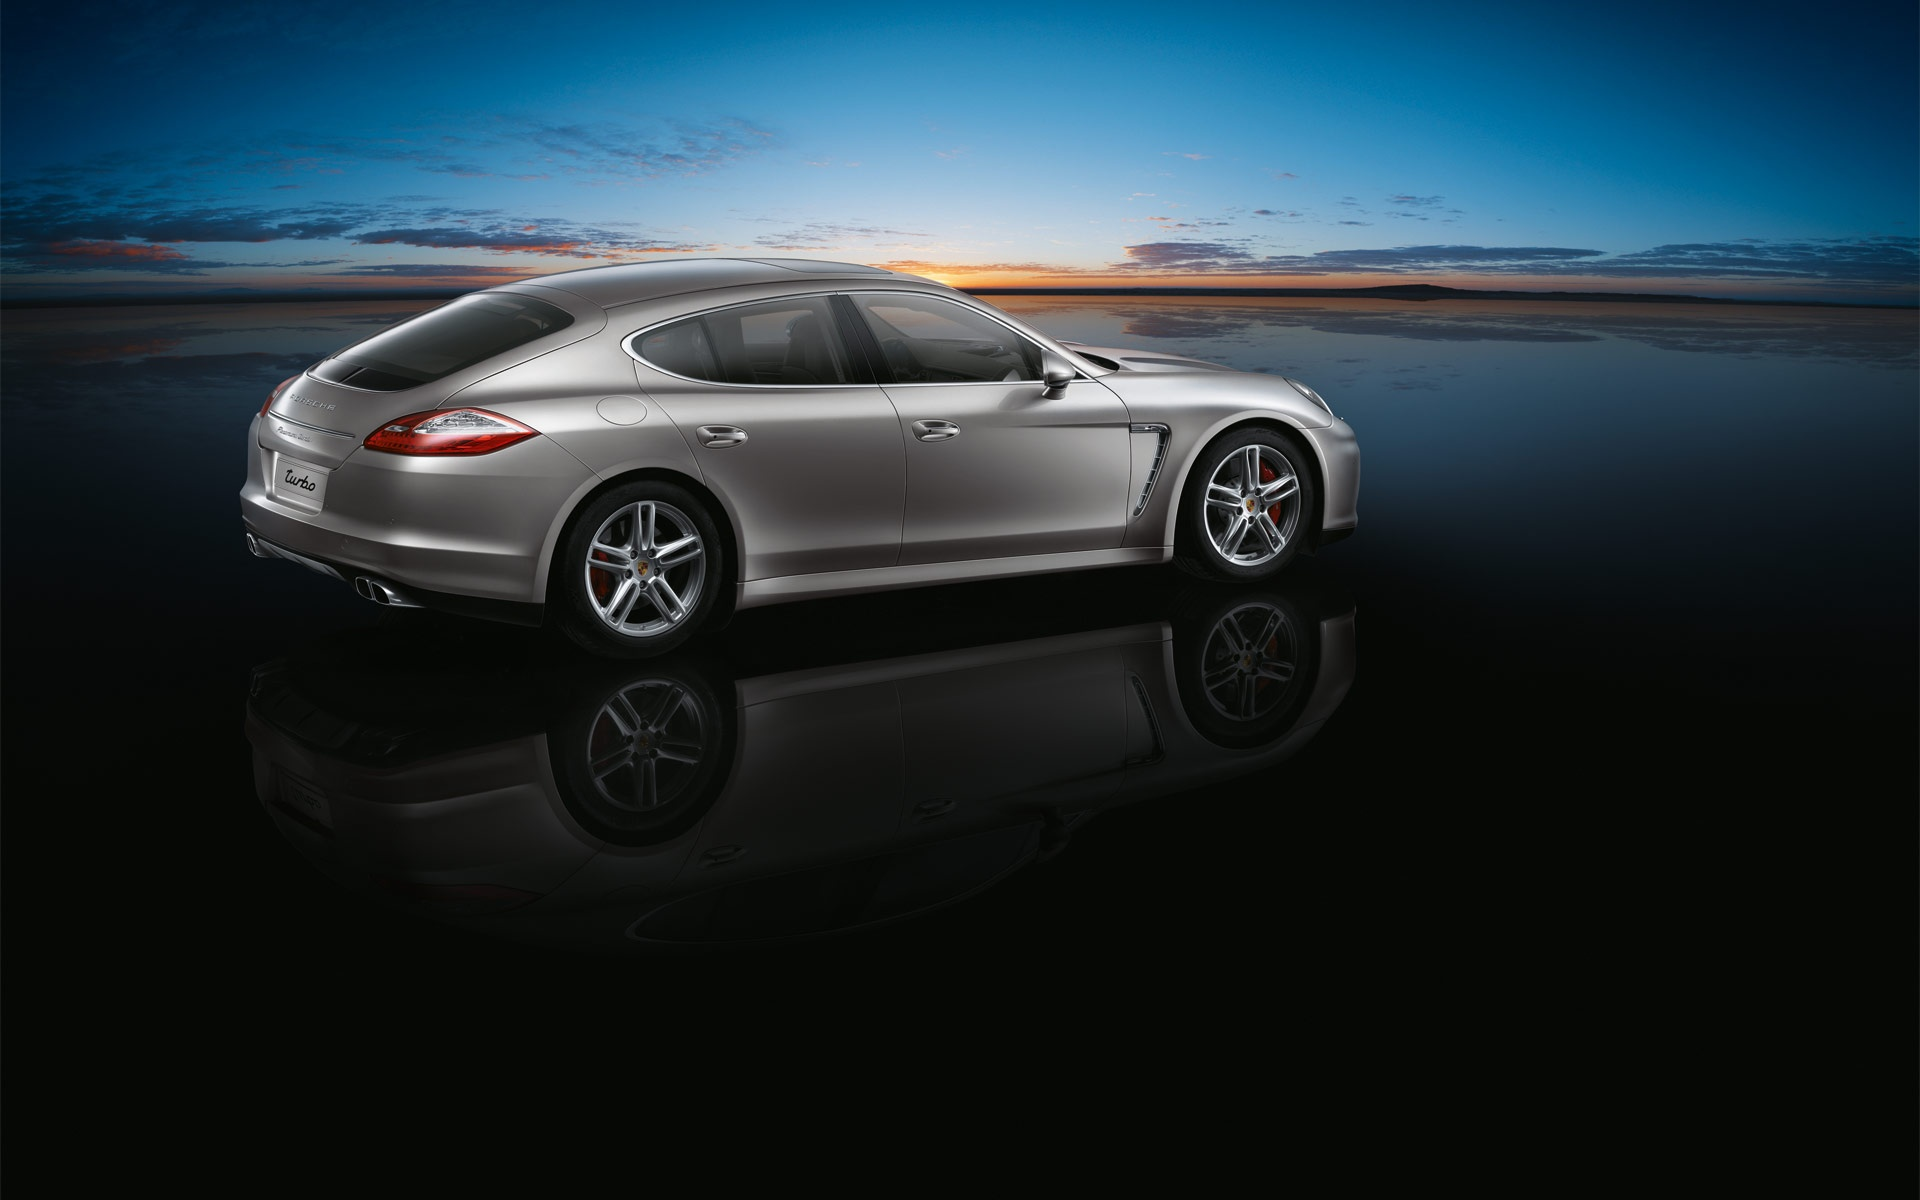 Porsche Turbo Panamera wallpapers HD   264530 1920x1200